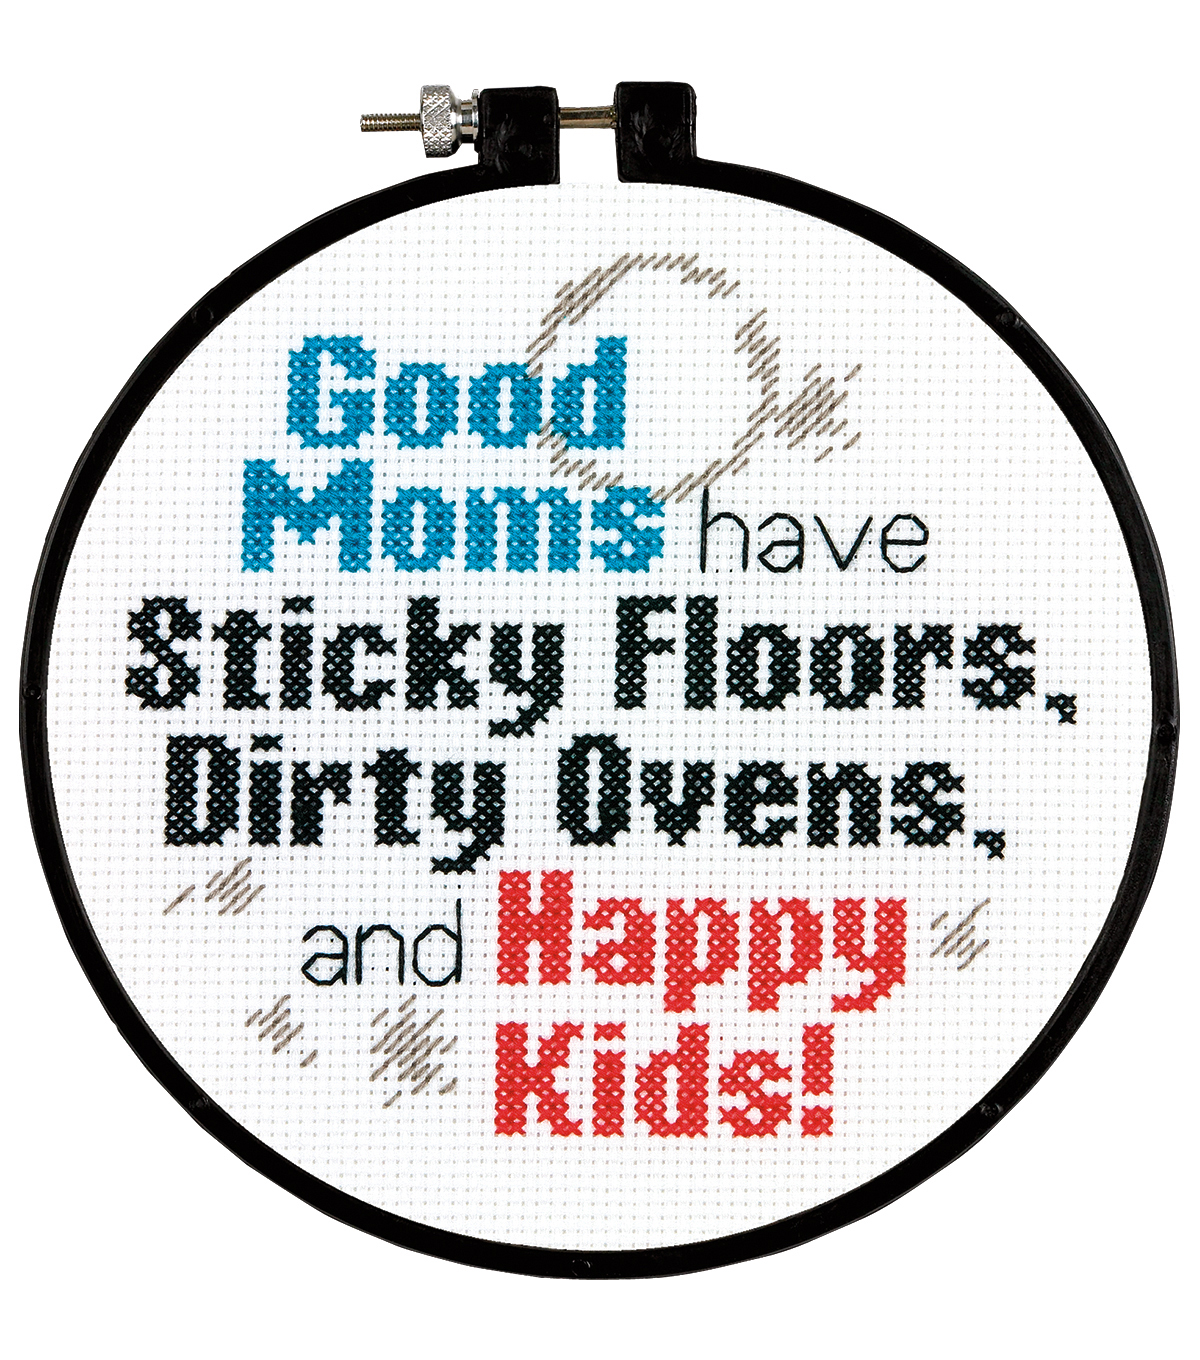 Dimensions Stitch Wits Good Moms Mini Counted Cross Stitch Kit